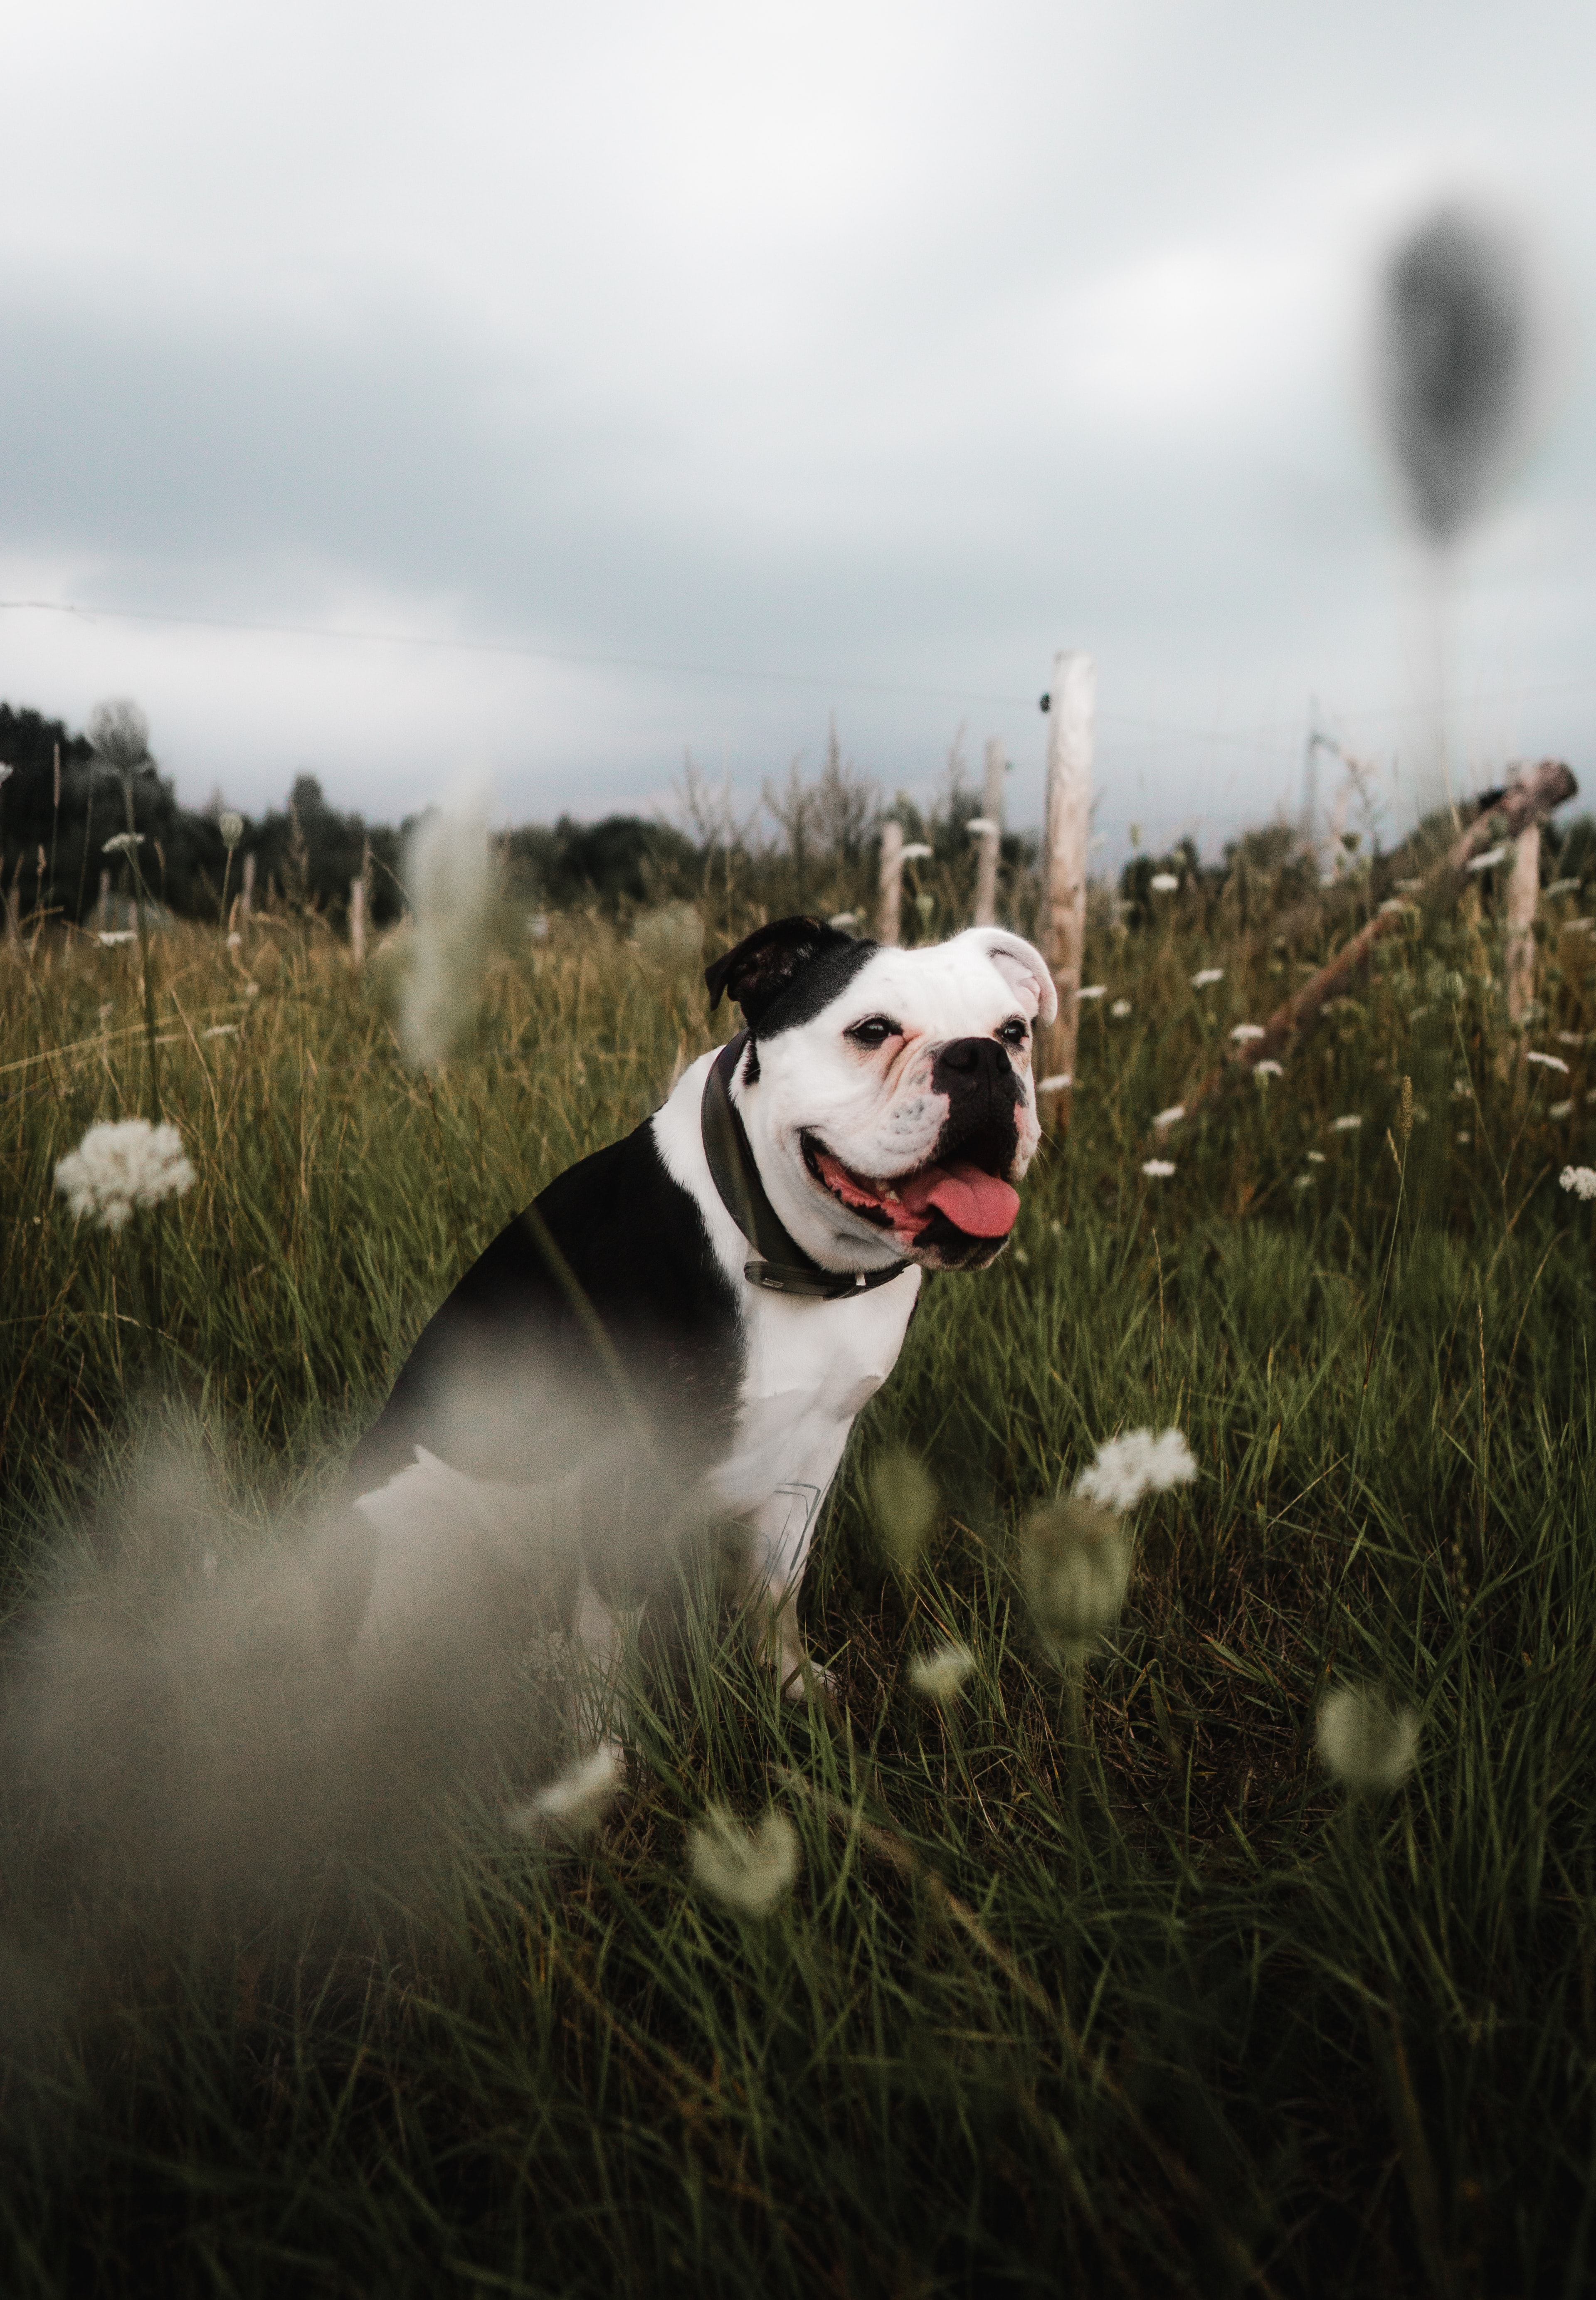 152964 download wallpaper Animals, Bulldog, Pet, Protruding Tongue, Tongue Stuck Out, Grass screensavers and pictures for free